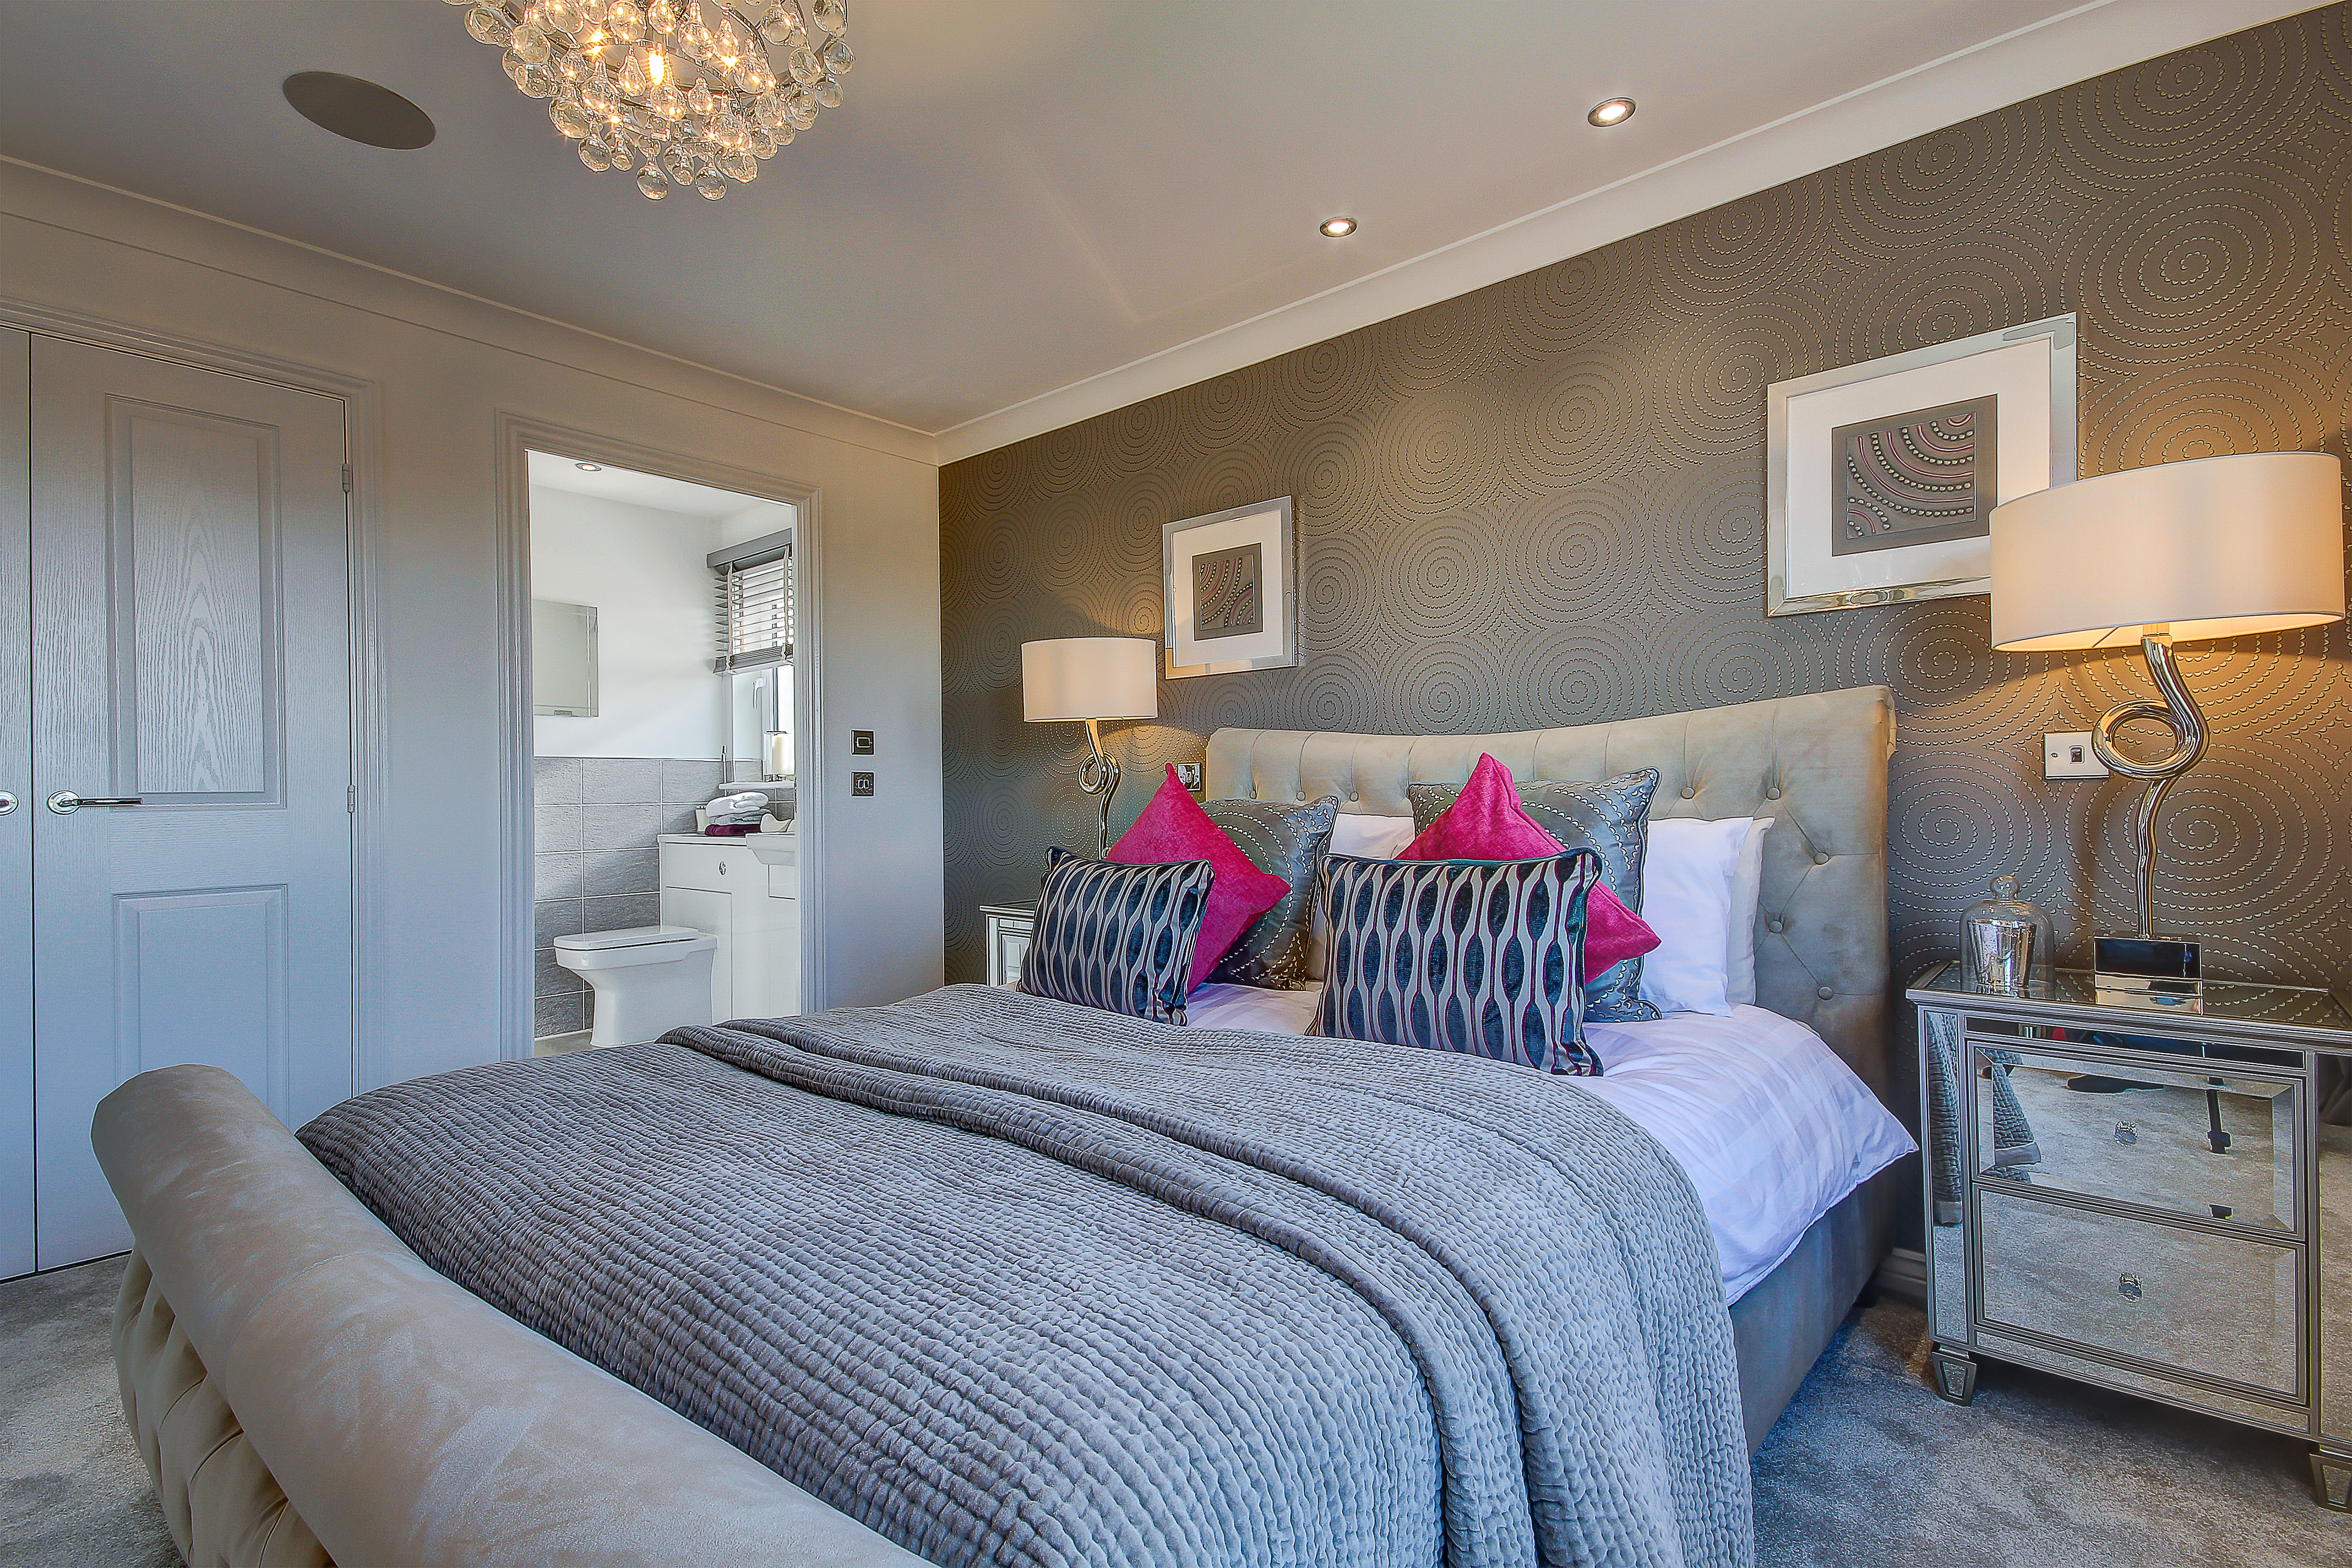 TWWS Avondale Gardens - Wallace Bedroom 1_2